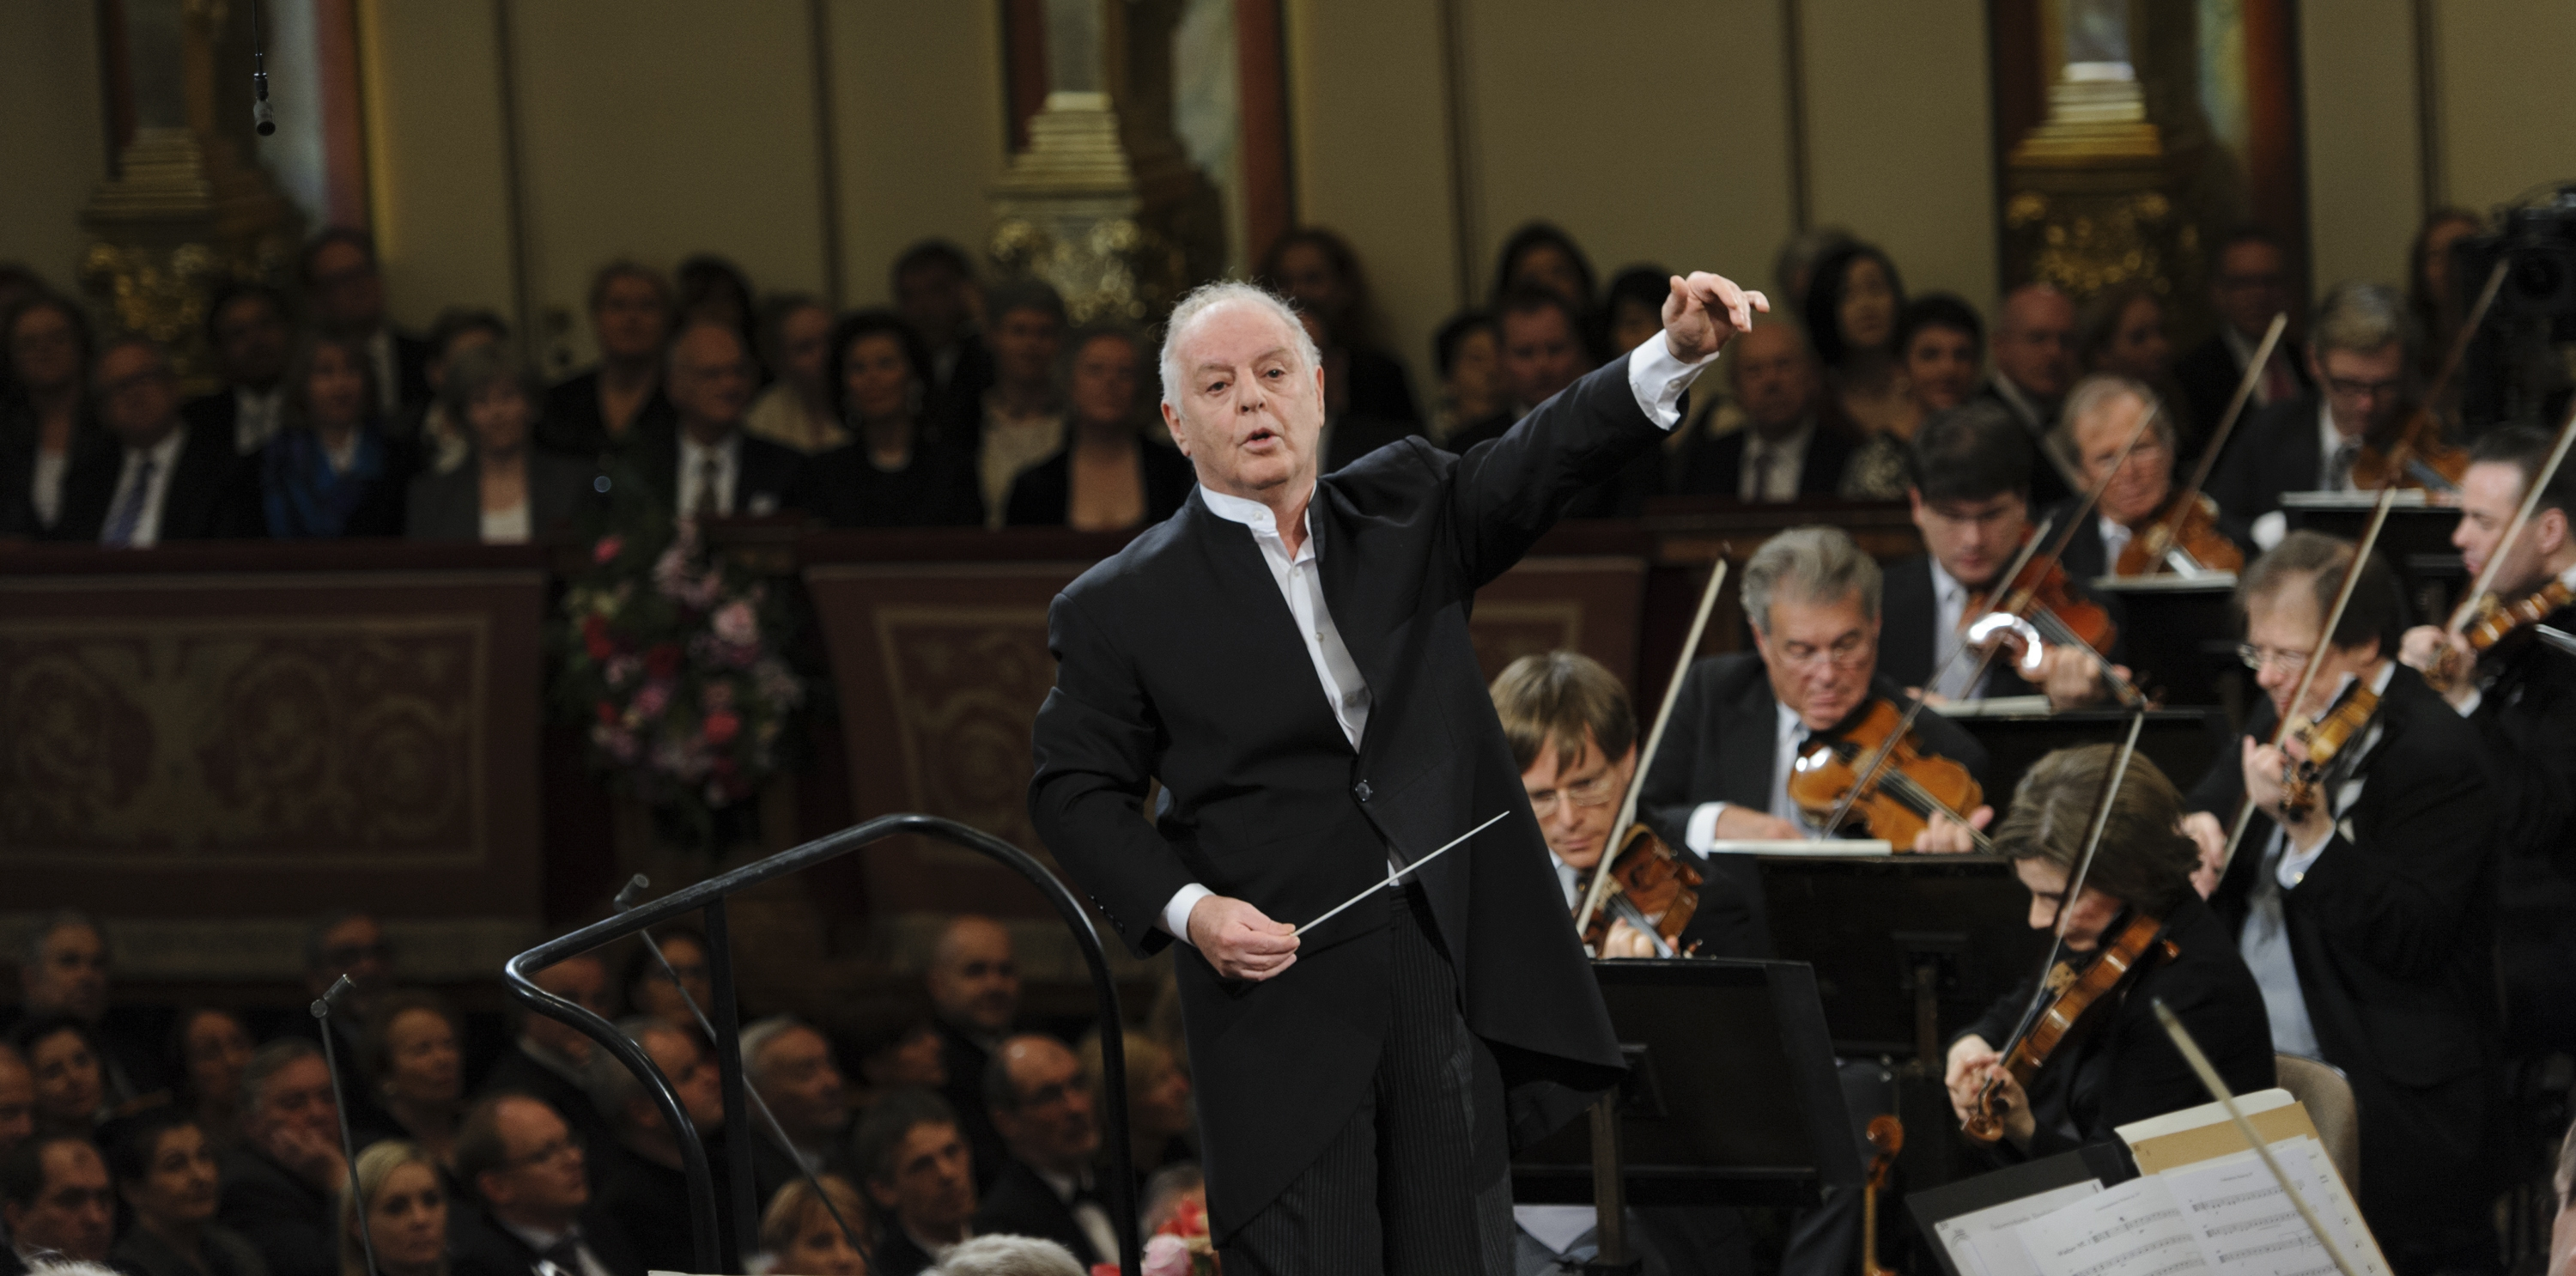 Daniel Barenboim conducts the Vienna Philharmonic in its Strauss family-filled New Year's Day concert.